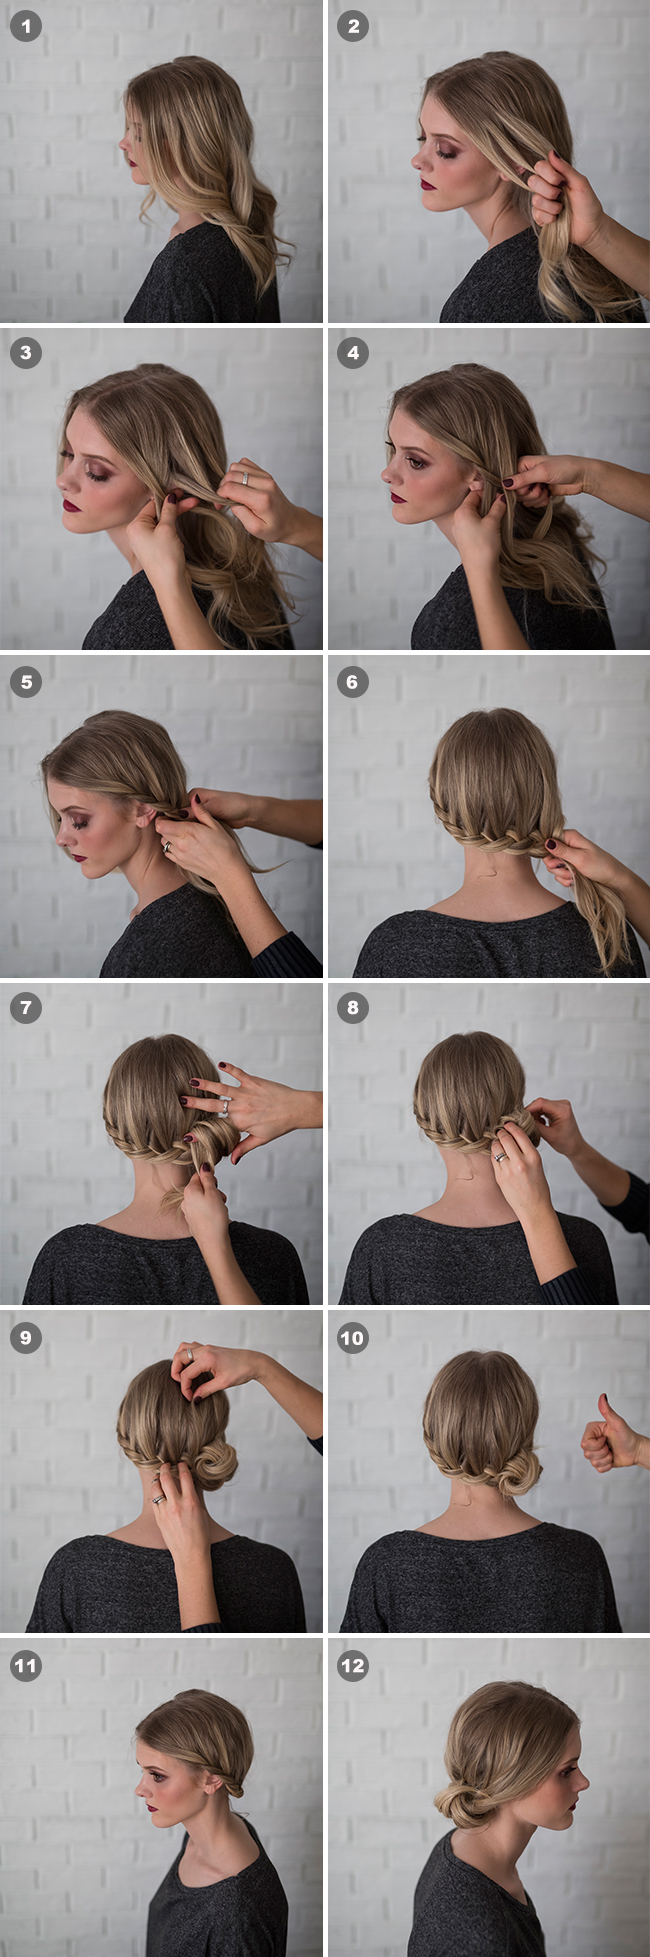 hair tutorial2